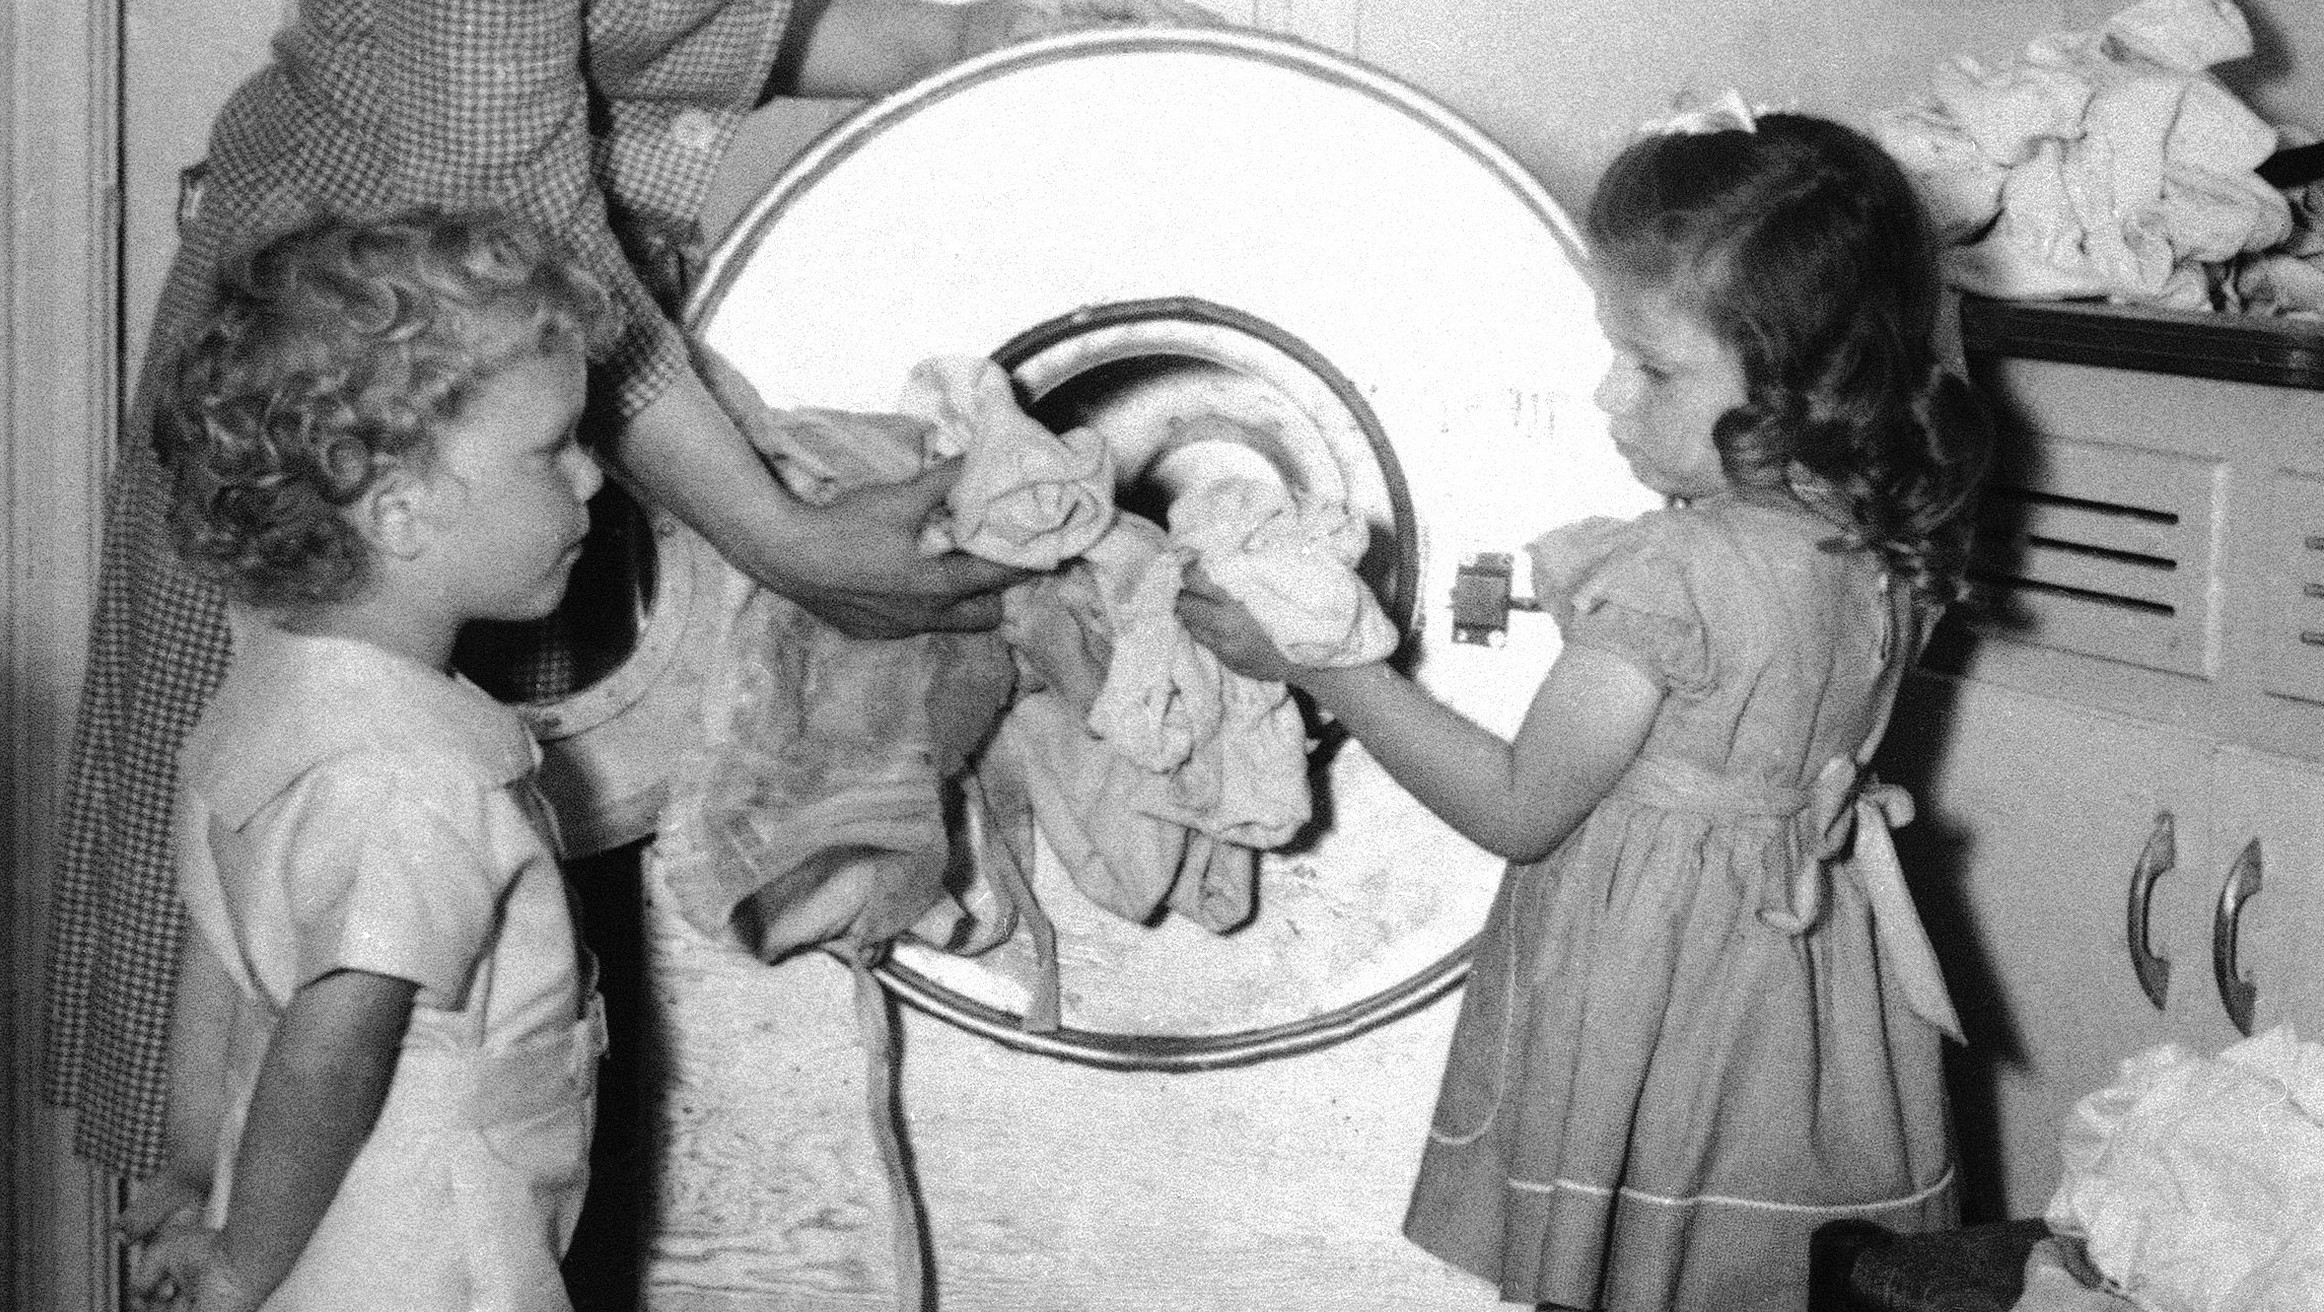 Mrs. Coy and daughter Ellen Hays stuff the week's soiled clothes into this washing machine in Marietta, GA. on August 26, 1945, which father Coy, production worker on Superfortresses, built from $6.50 worth of B-29 scrap plus a motor of his own. Three-year-old Jim Coy III looks on. (AP Photo)